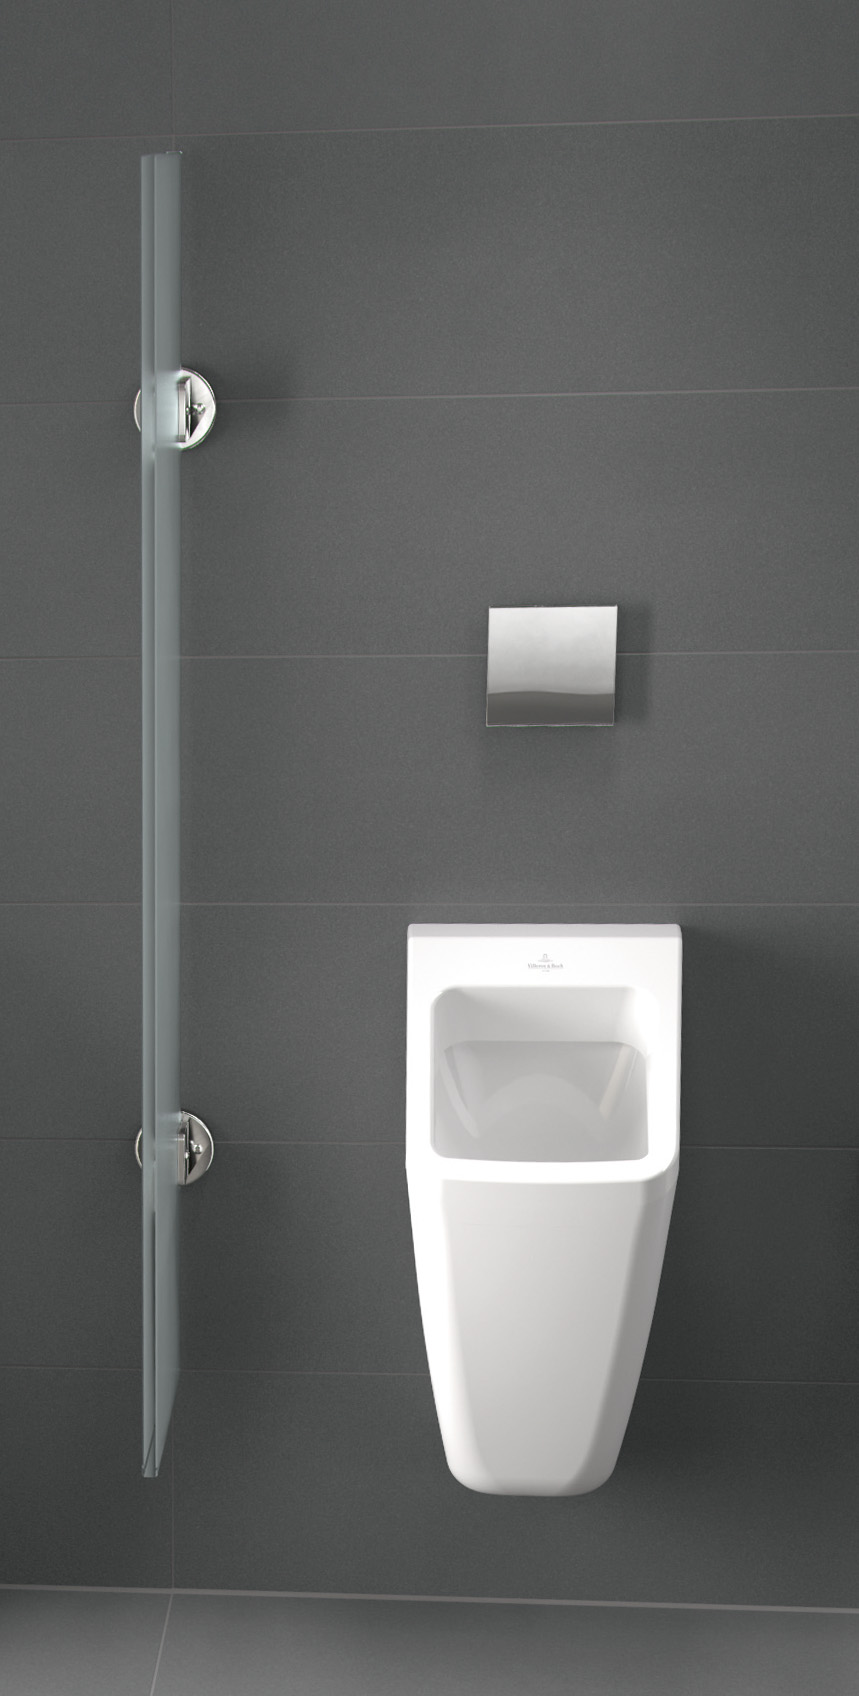 Architectura Urinals